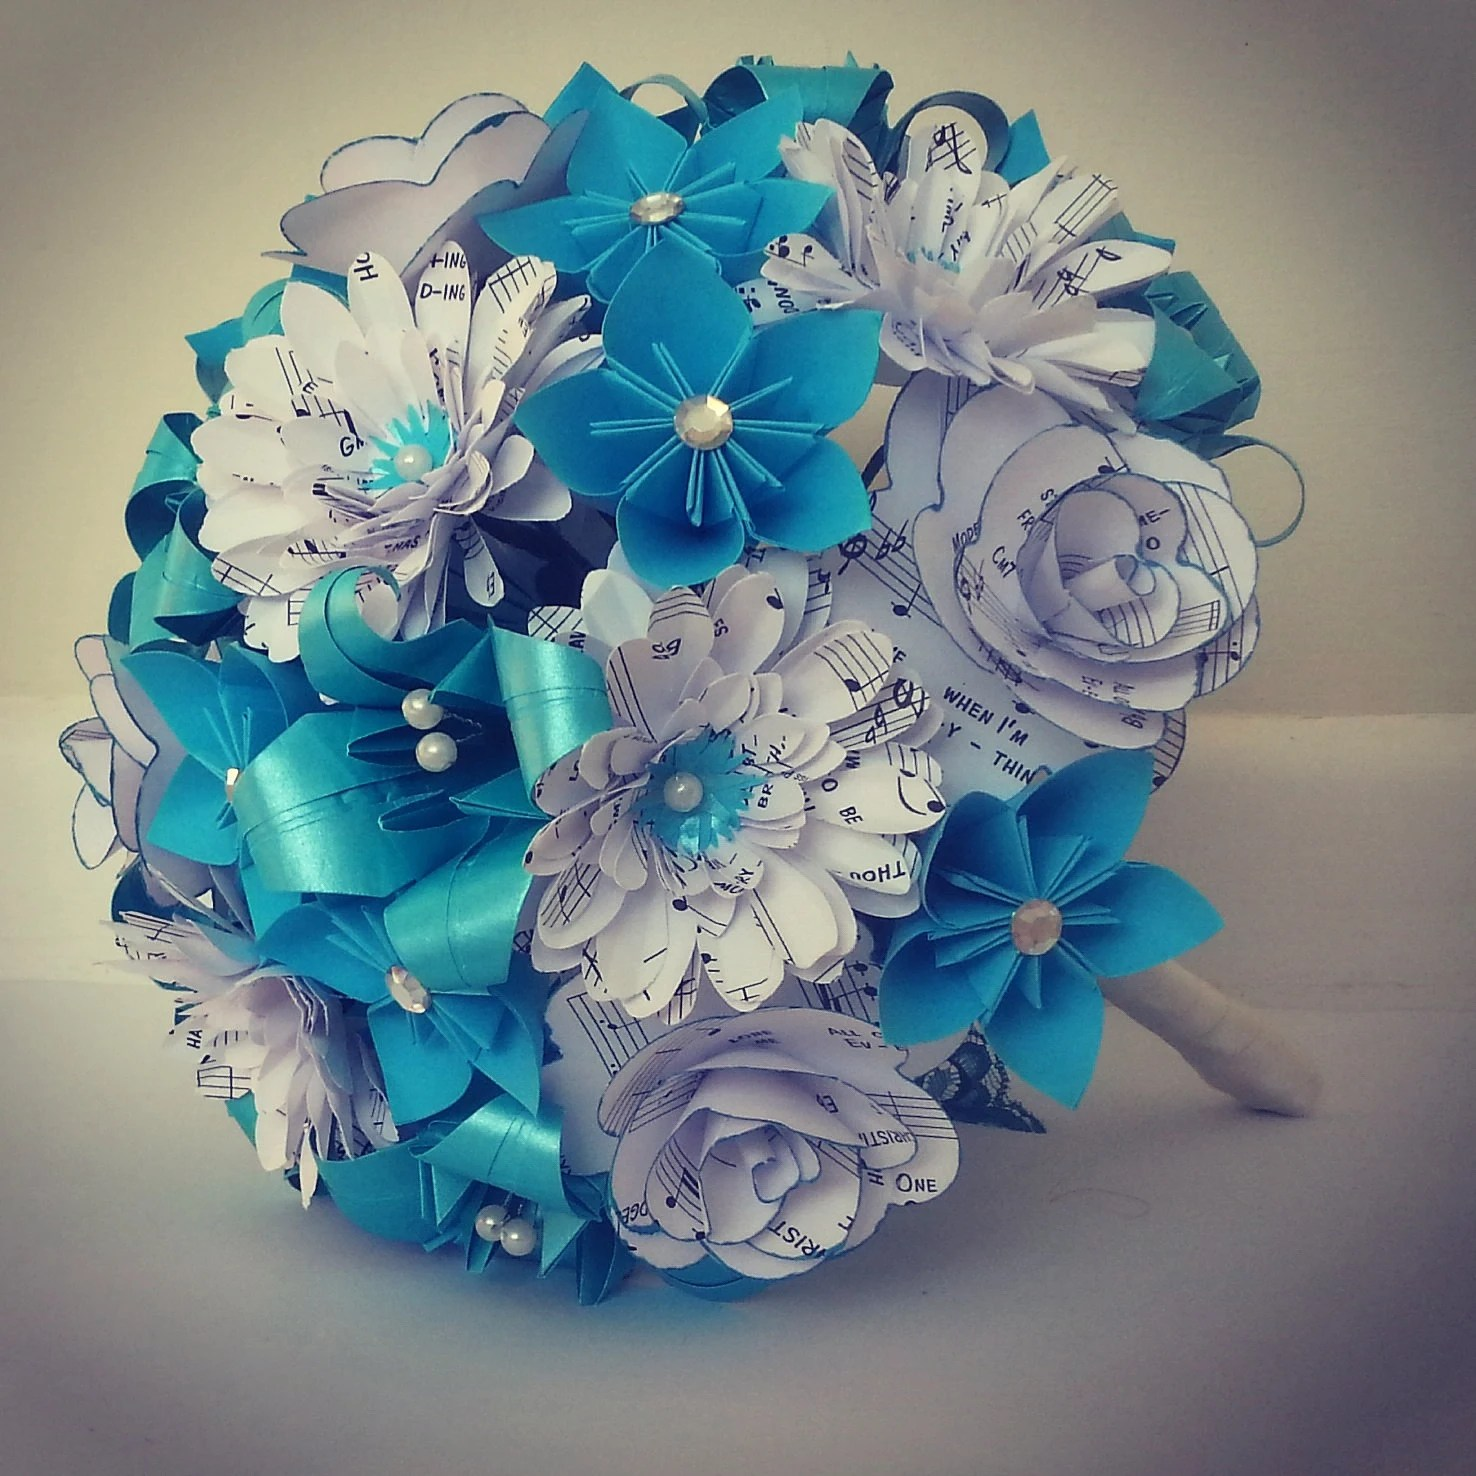 Turquoise Wedding Centerpieces With Flowers